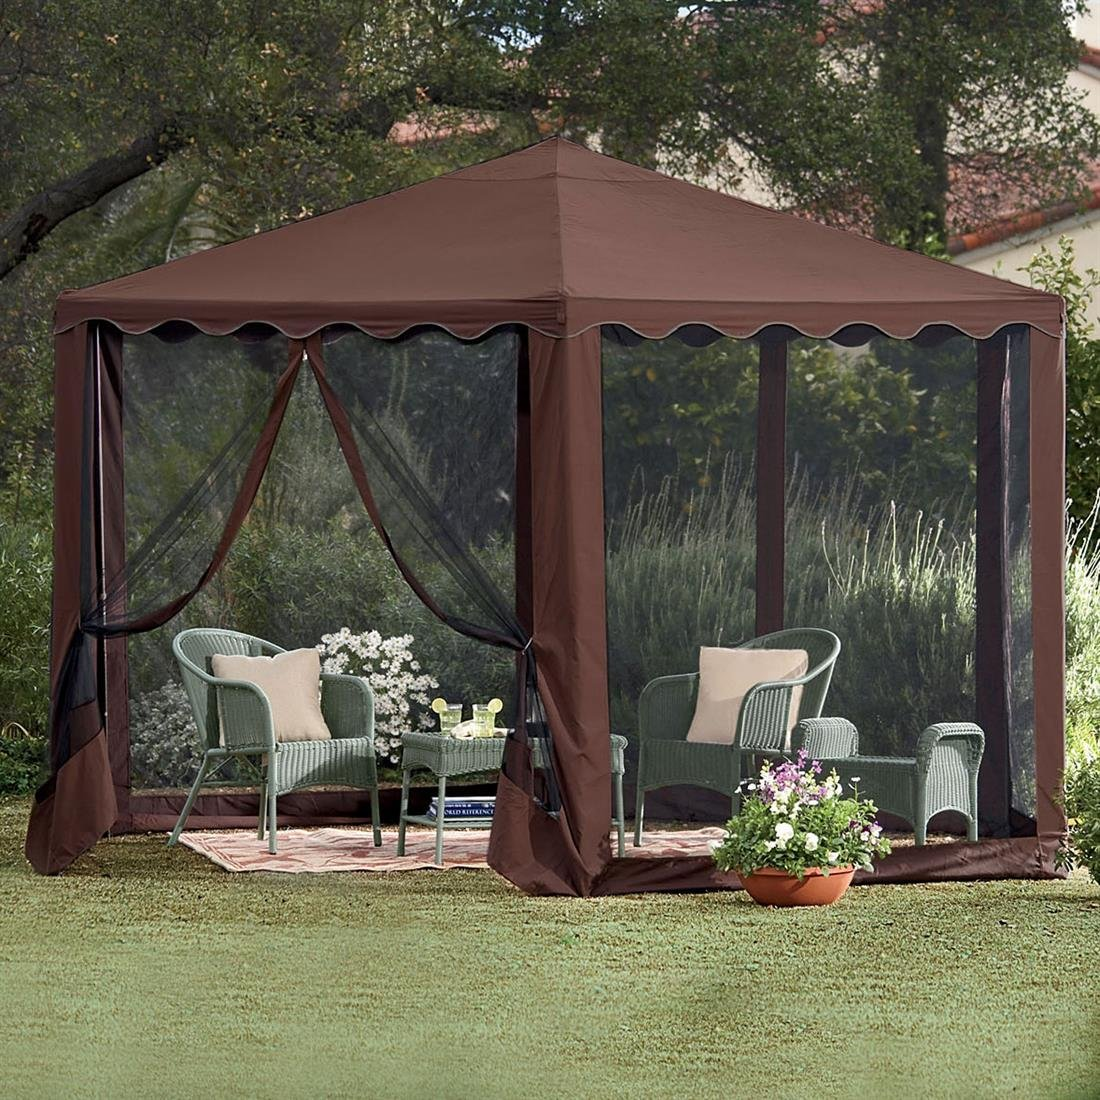 Gazebo canopy patio tent outdoor furniture deck frame for Outdoor furniture gazebo